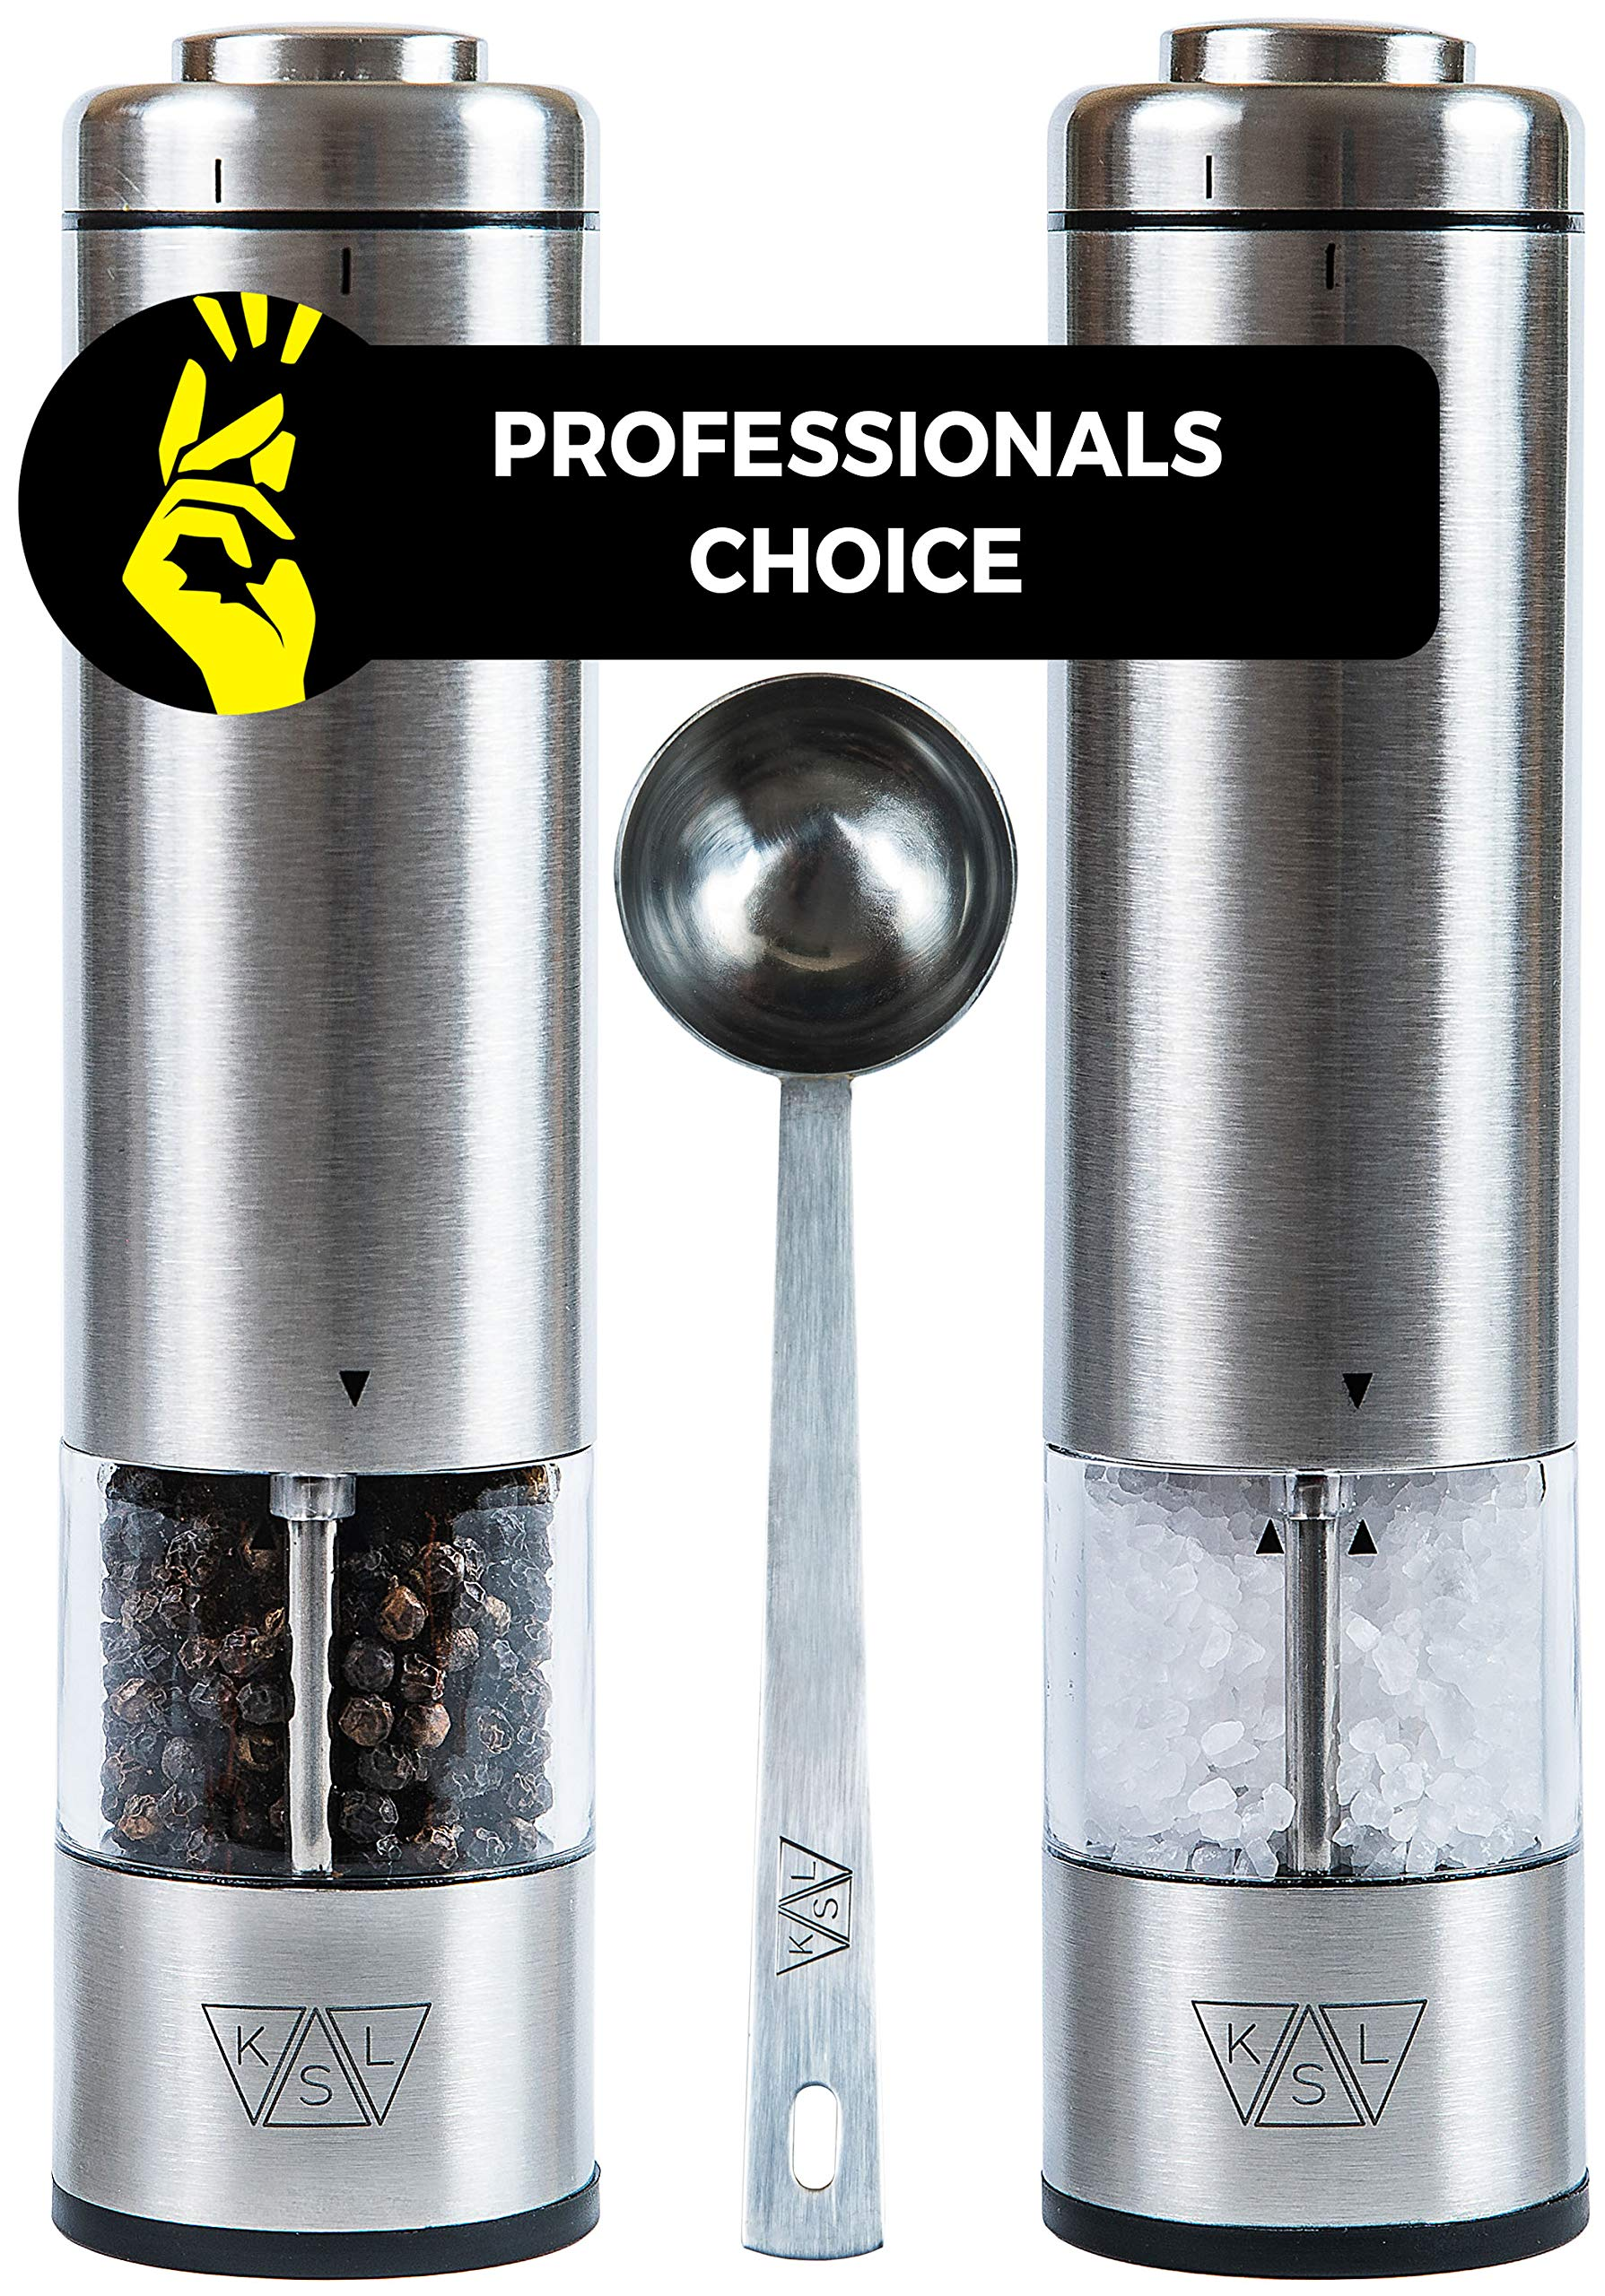 KSL Electric Salt and Pepper Grinder Set of 2 (Batteries Included) - Gift-ready Box - Adjustable Powered Shakers - Automatic One Hand Mills - Stainless Steel Battery Operated Peppermills - LED Light by KSL